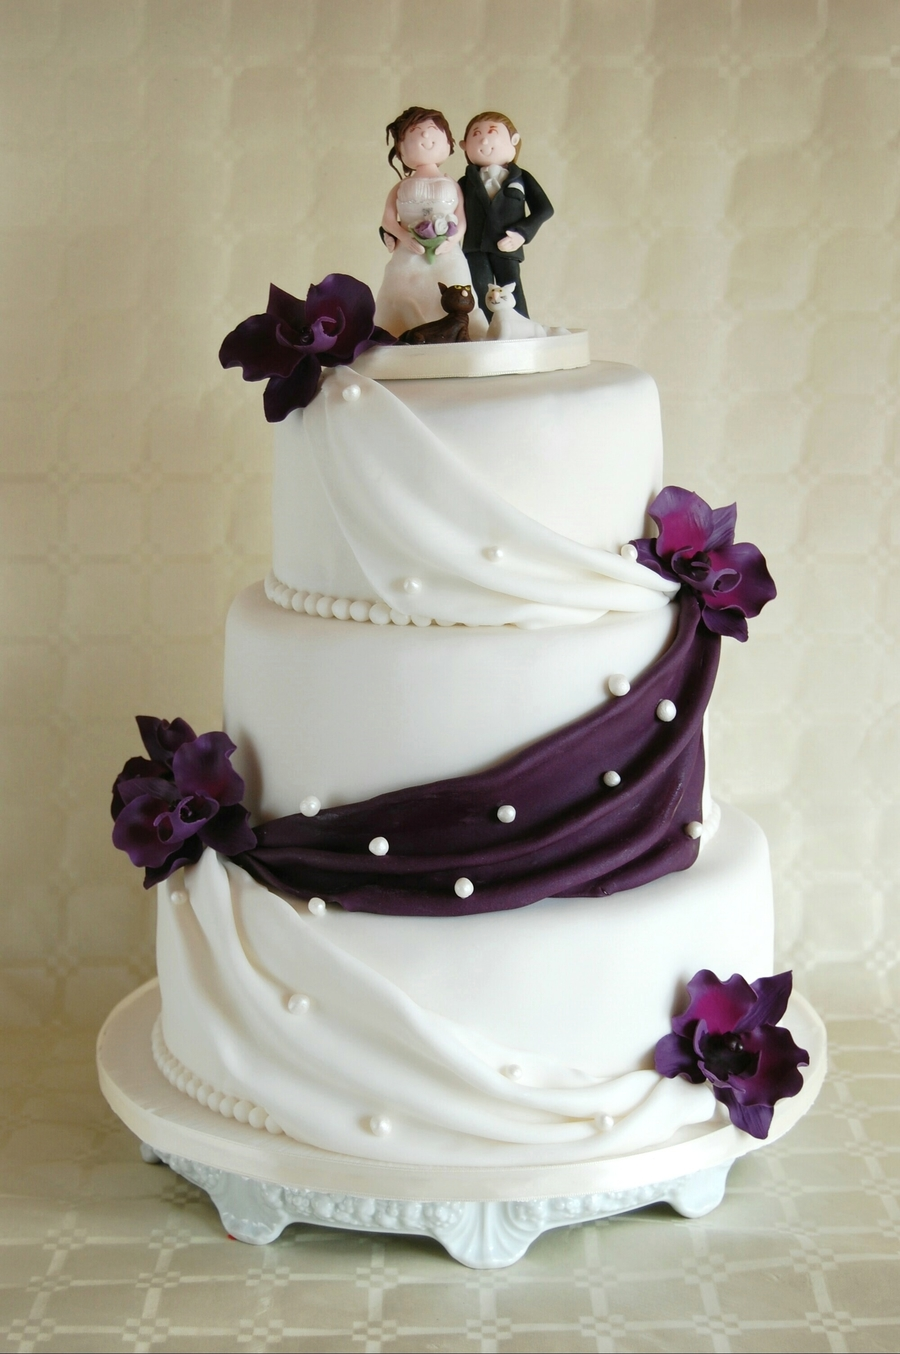 simple elegant wedding cake design simple wedding cake lilac orchids cakecentral 19970